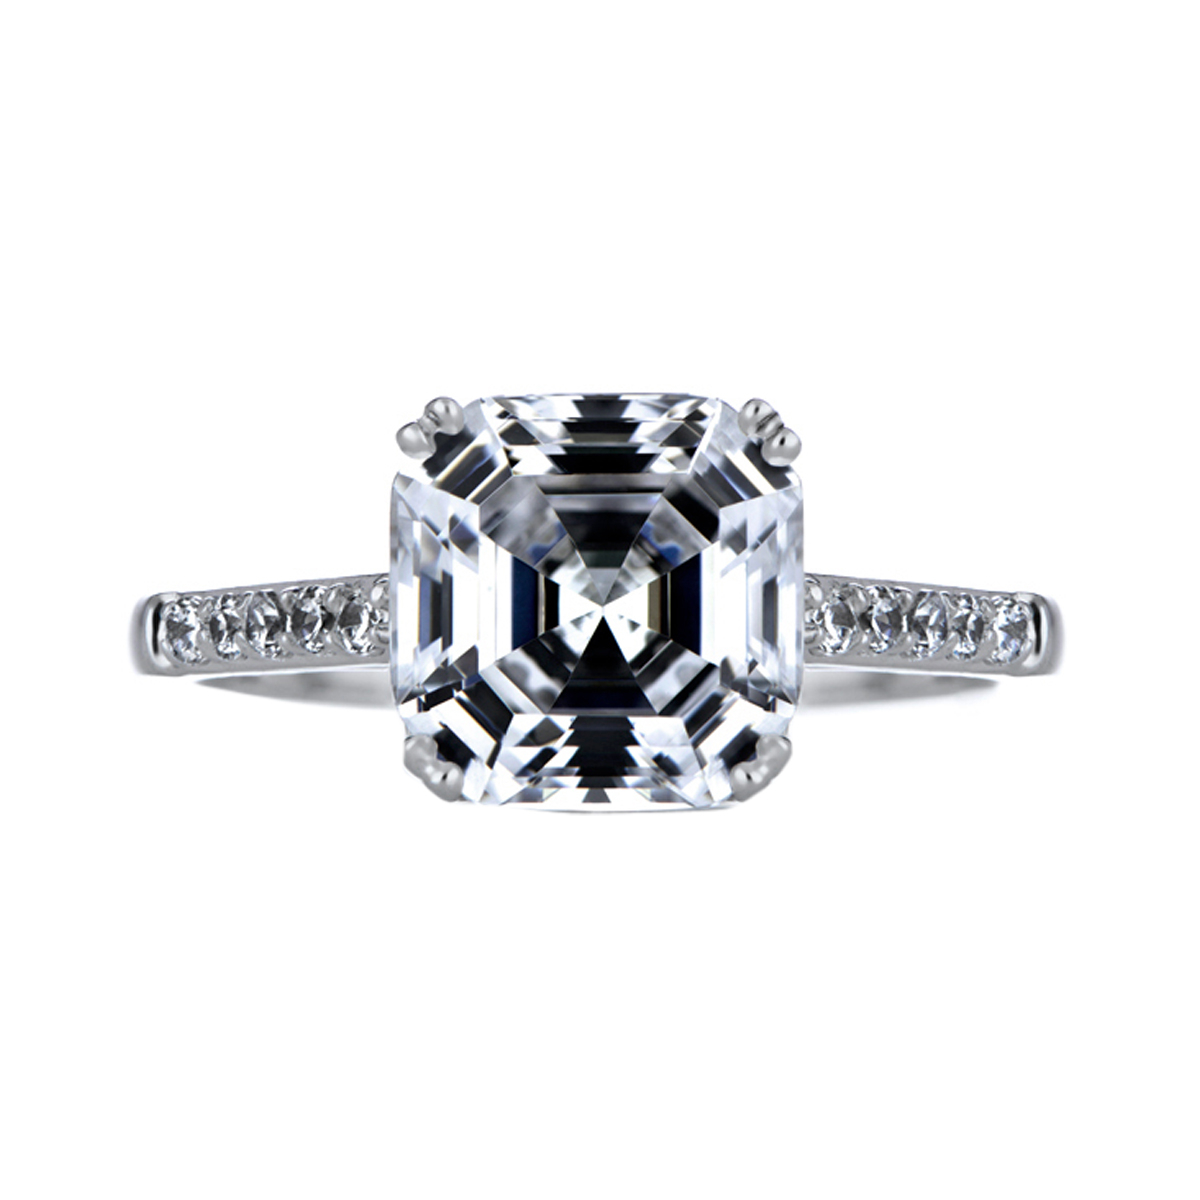 Asscher Cut Cz Engagement Ring Roll Off Image To Close Zoom Window